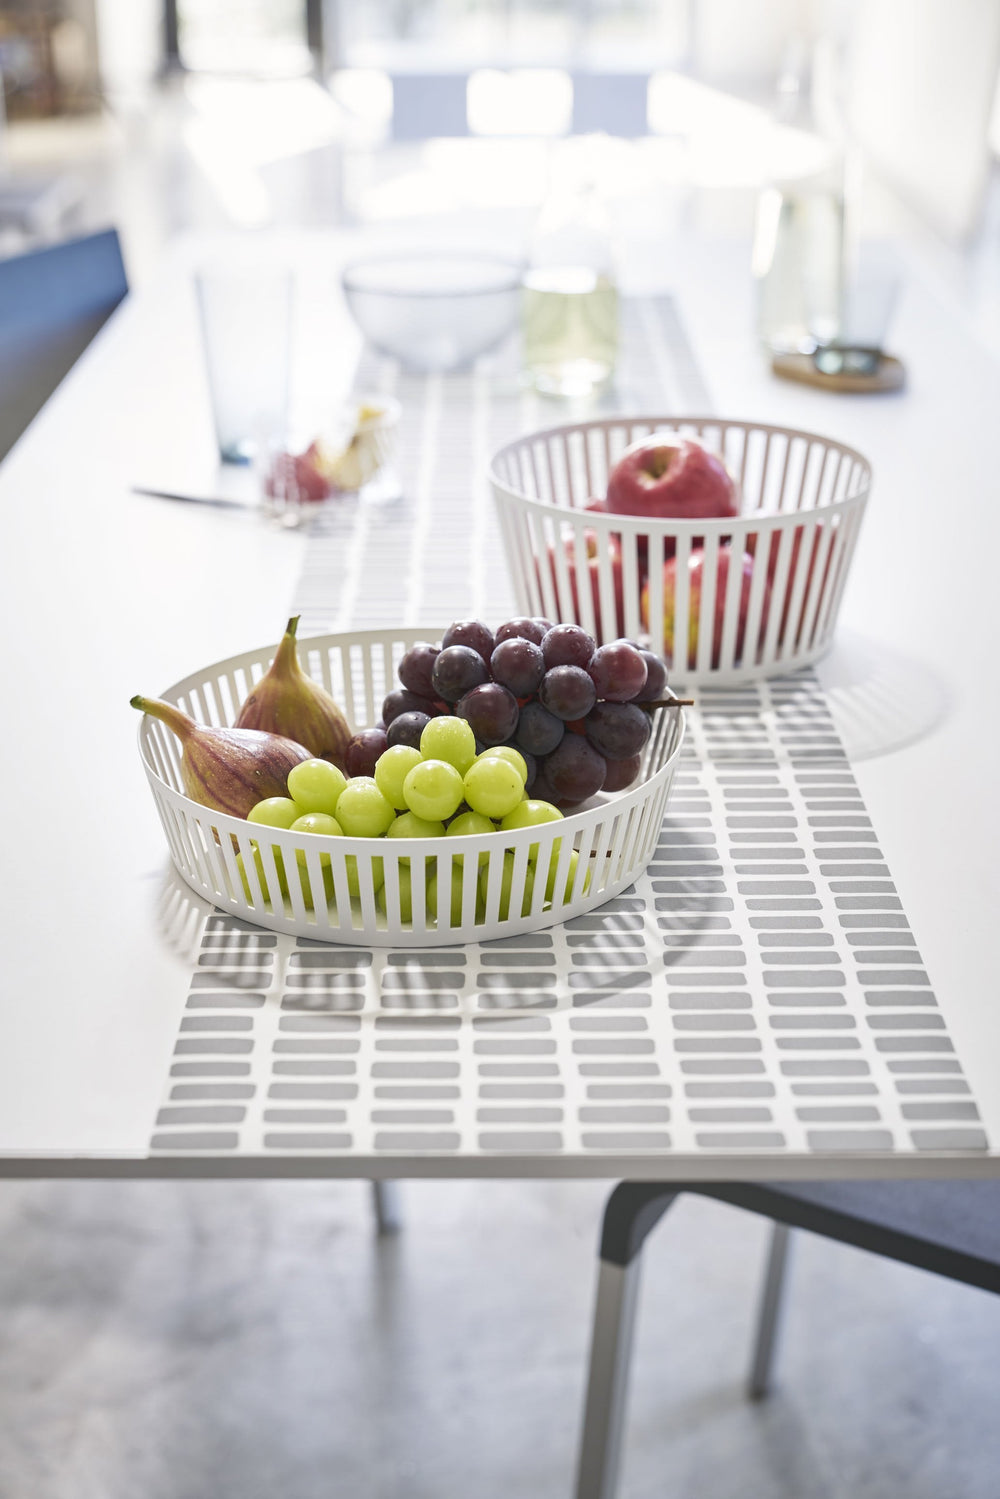 Short and tall Yamazaki Striped Steel Fruit Baskets, holding grapes and apples on a set dining room table